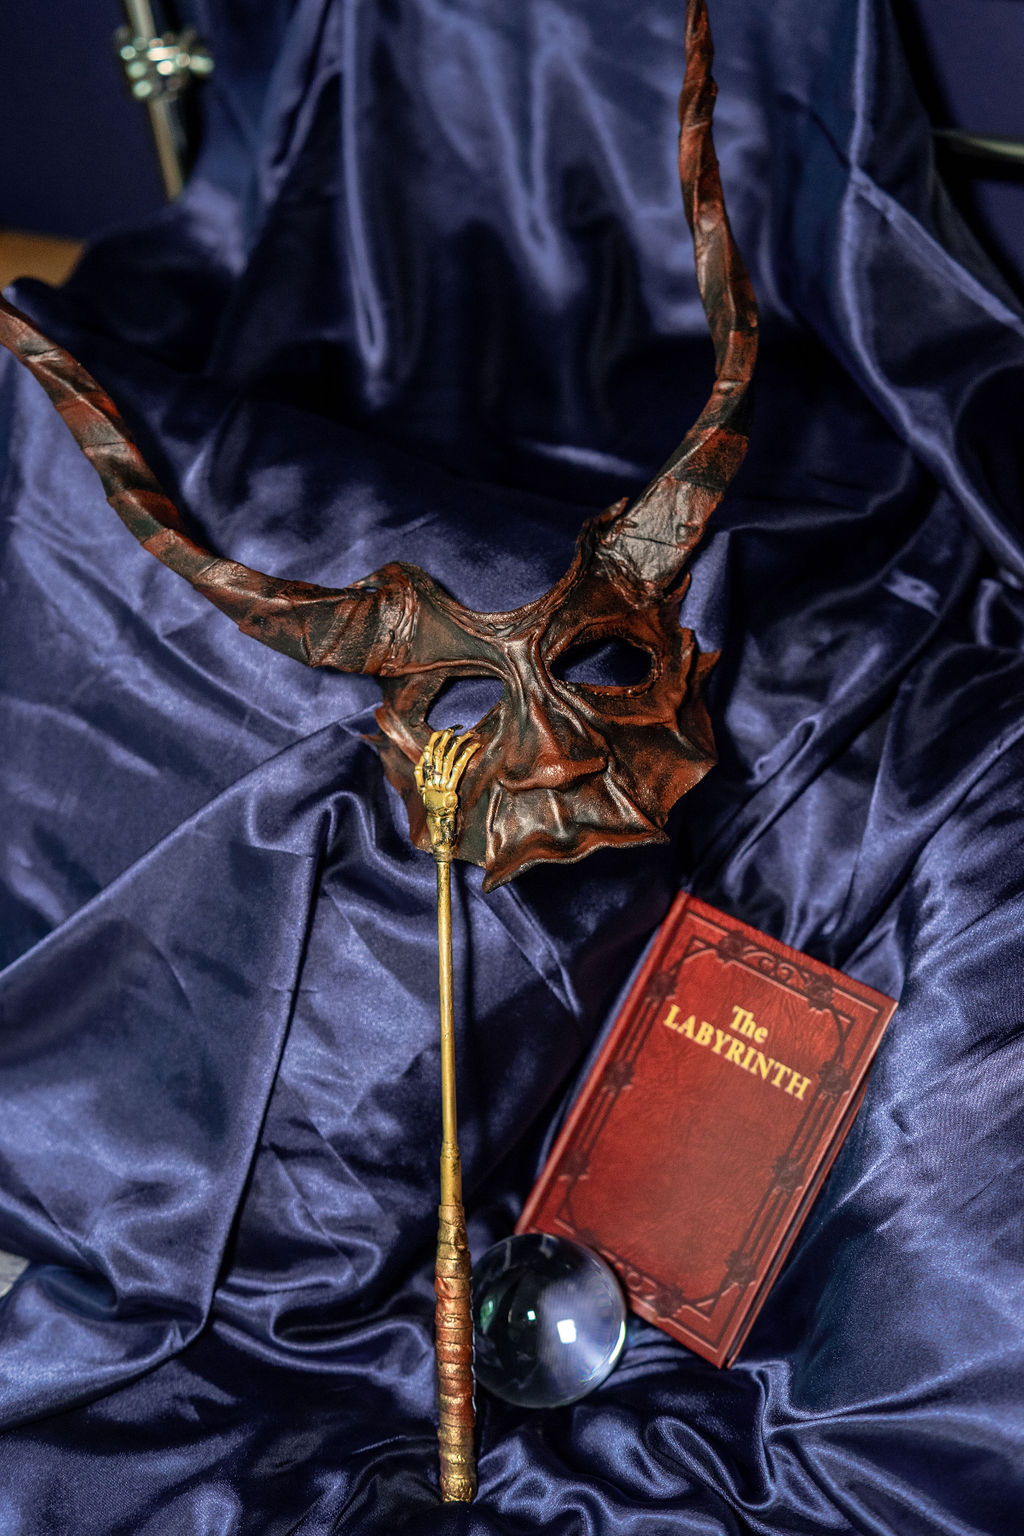 The Labyrinth book with mask